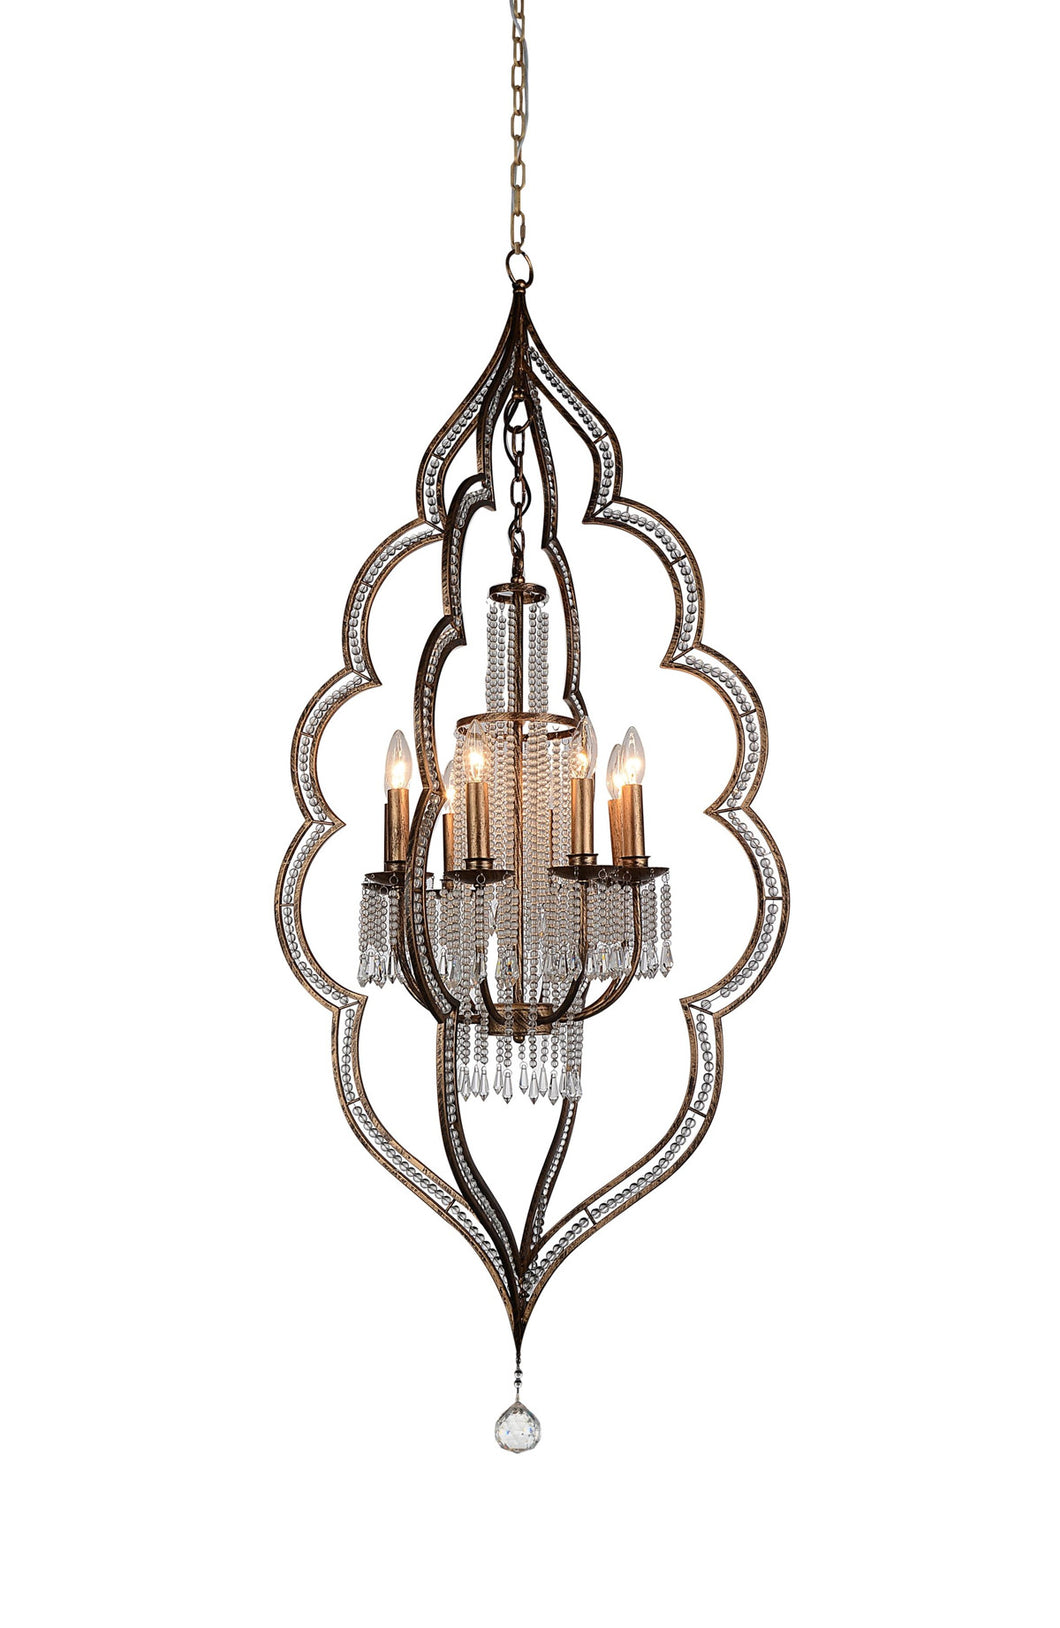 8 Light Up Chandelier with Champagne finish